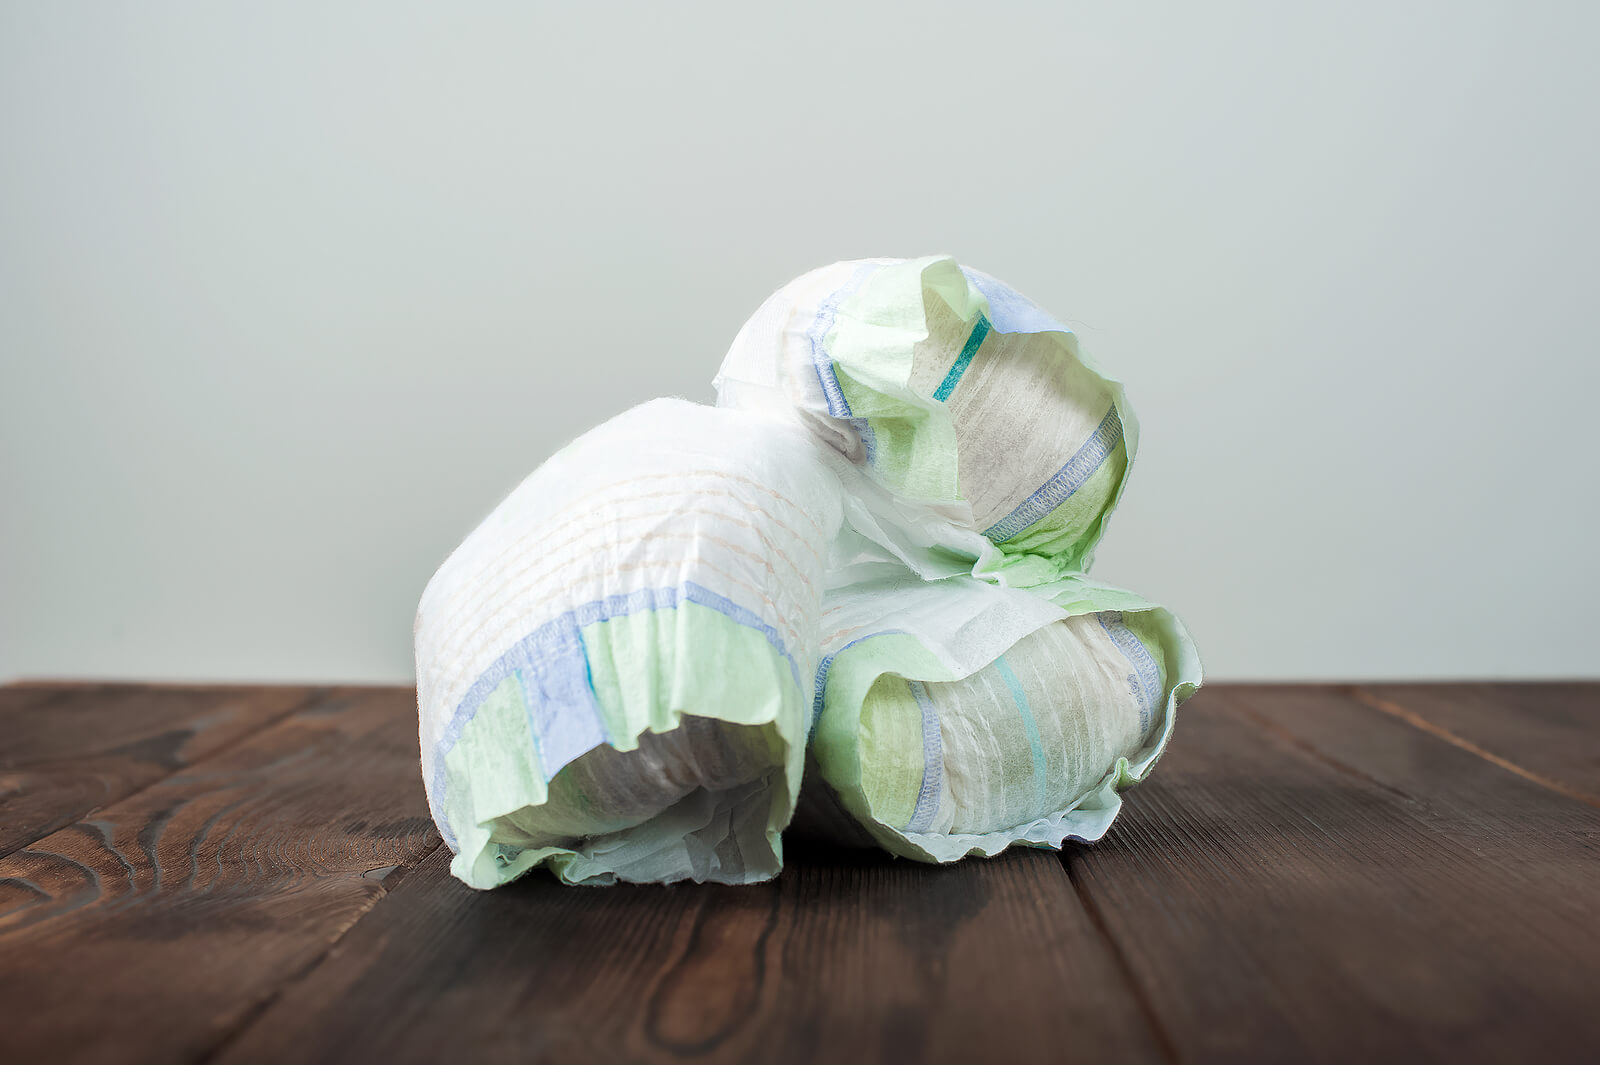 Nappies, ready for recycling